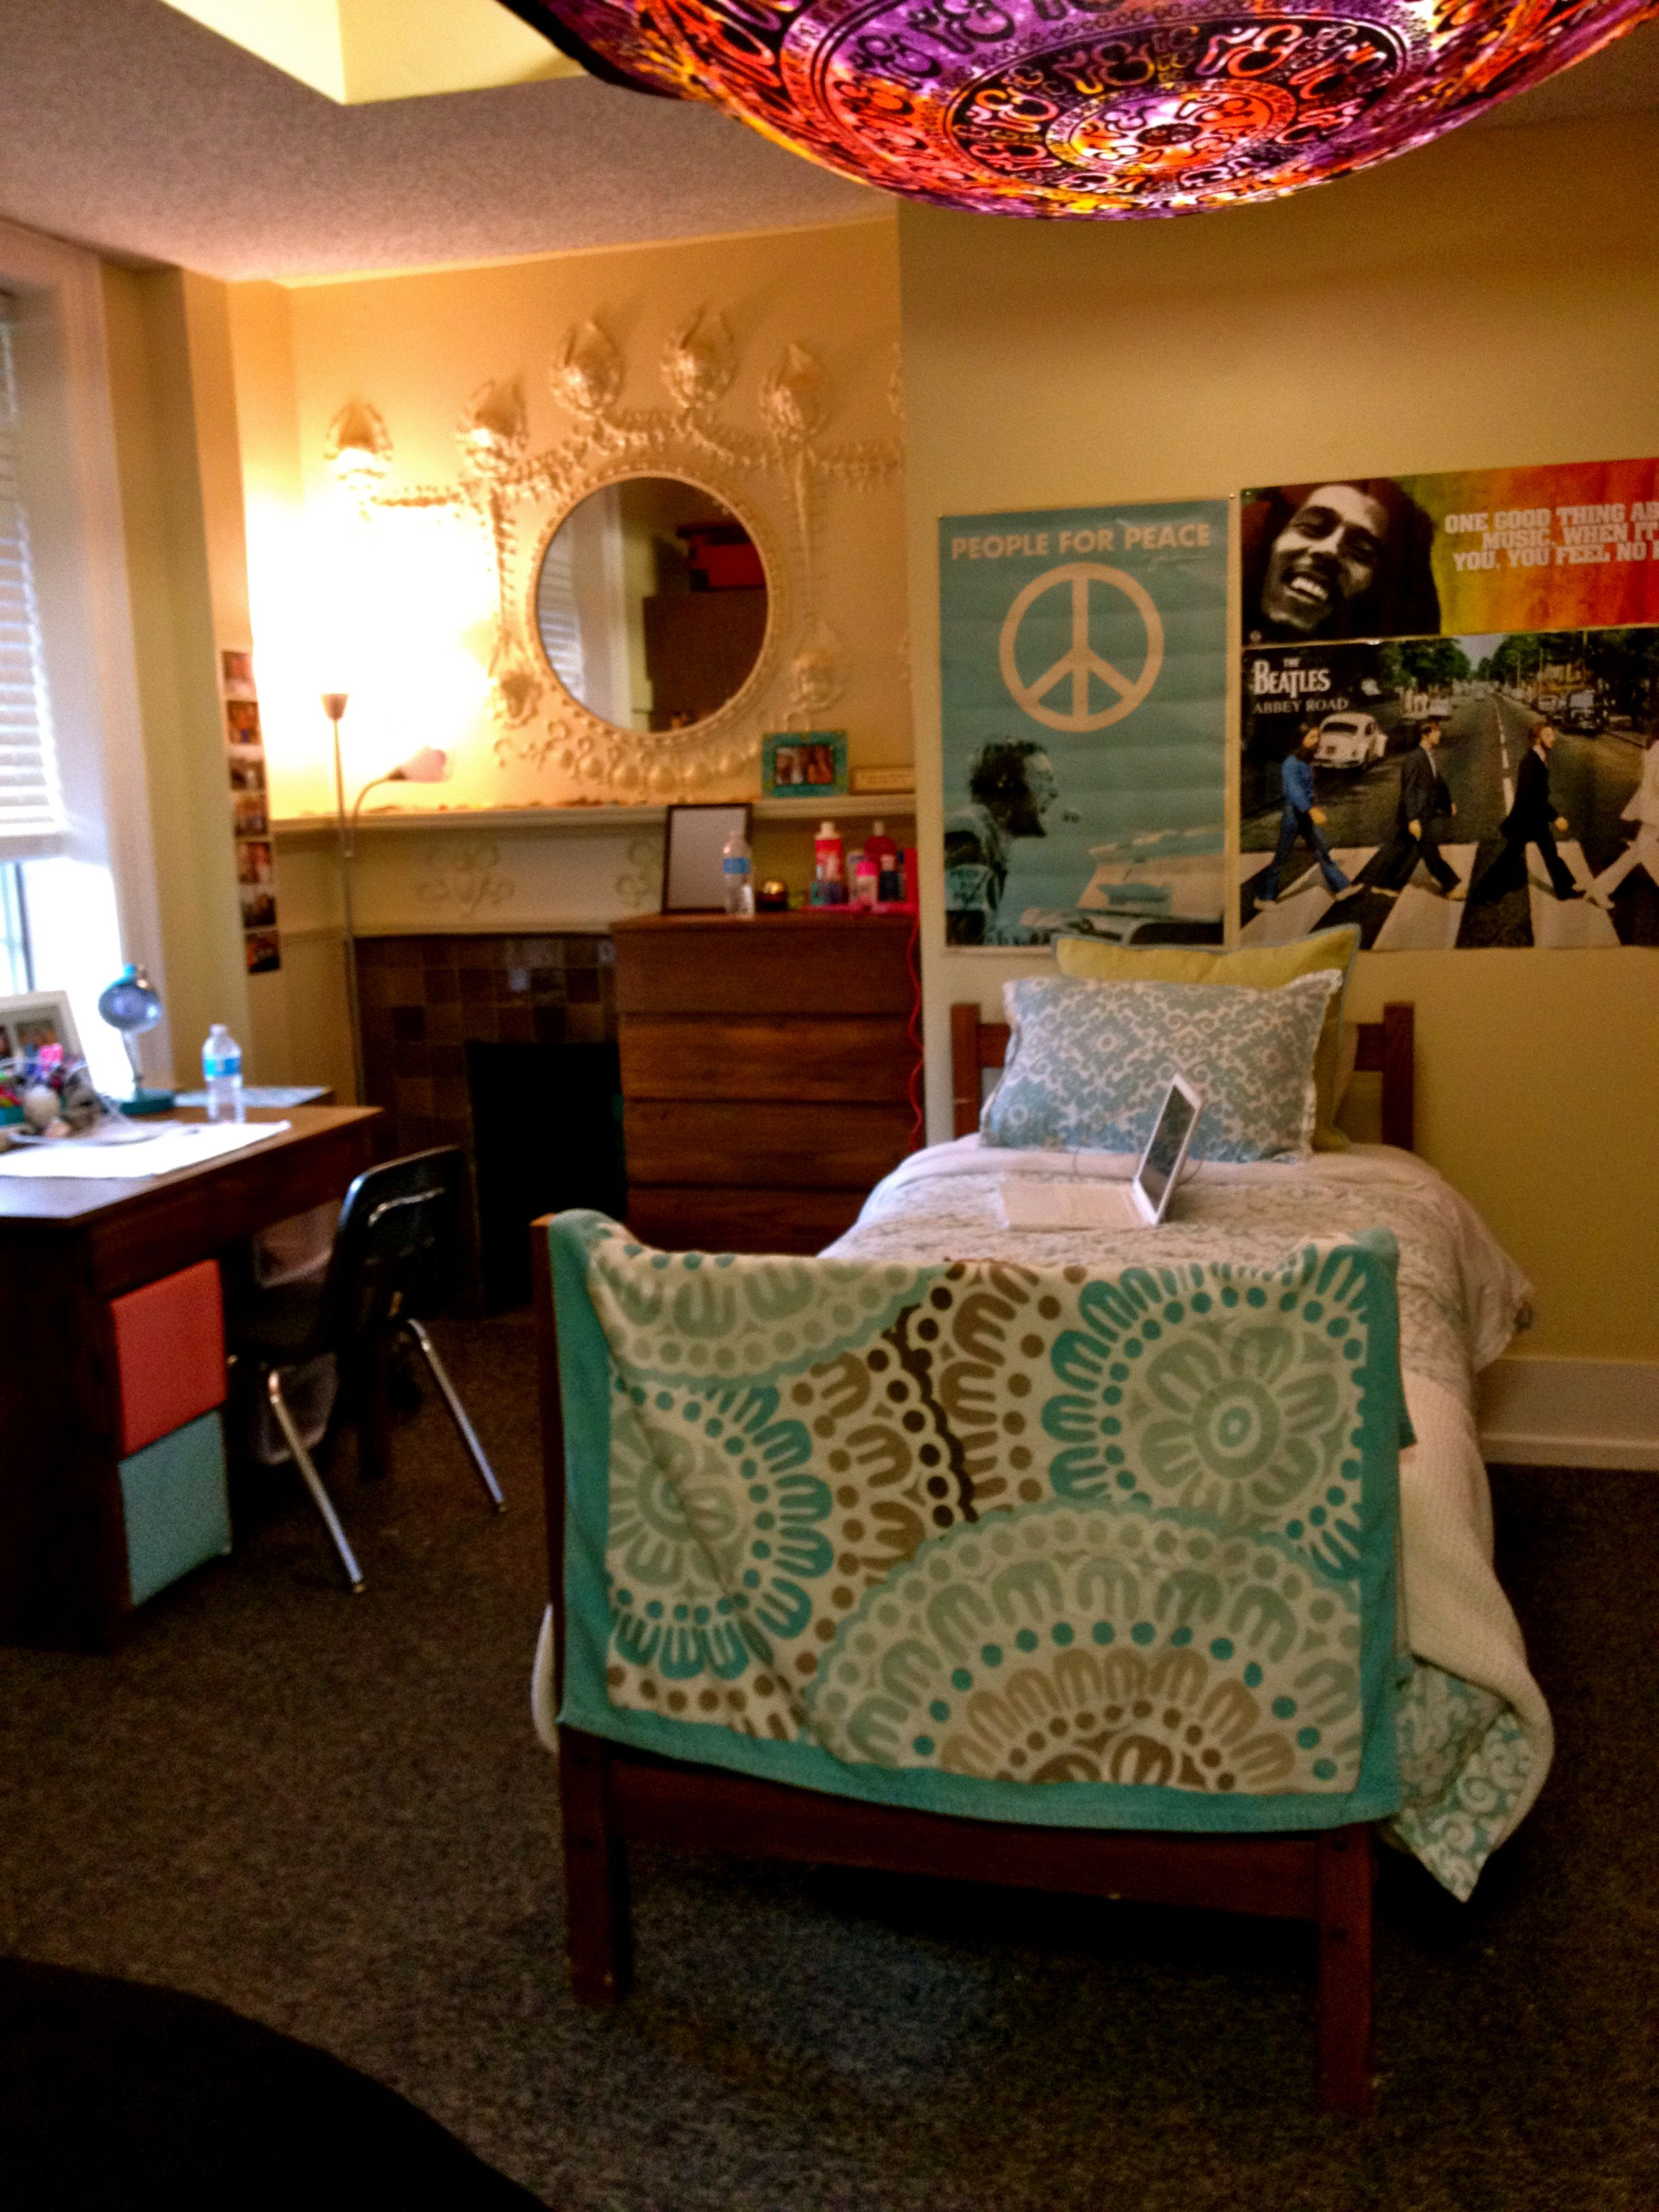 College Dorm Room Design: I MUST Find A Way To Create That Light Design! Adorable